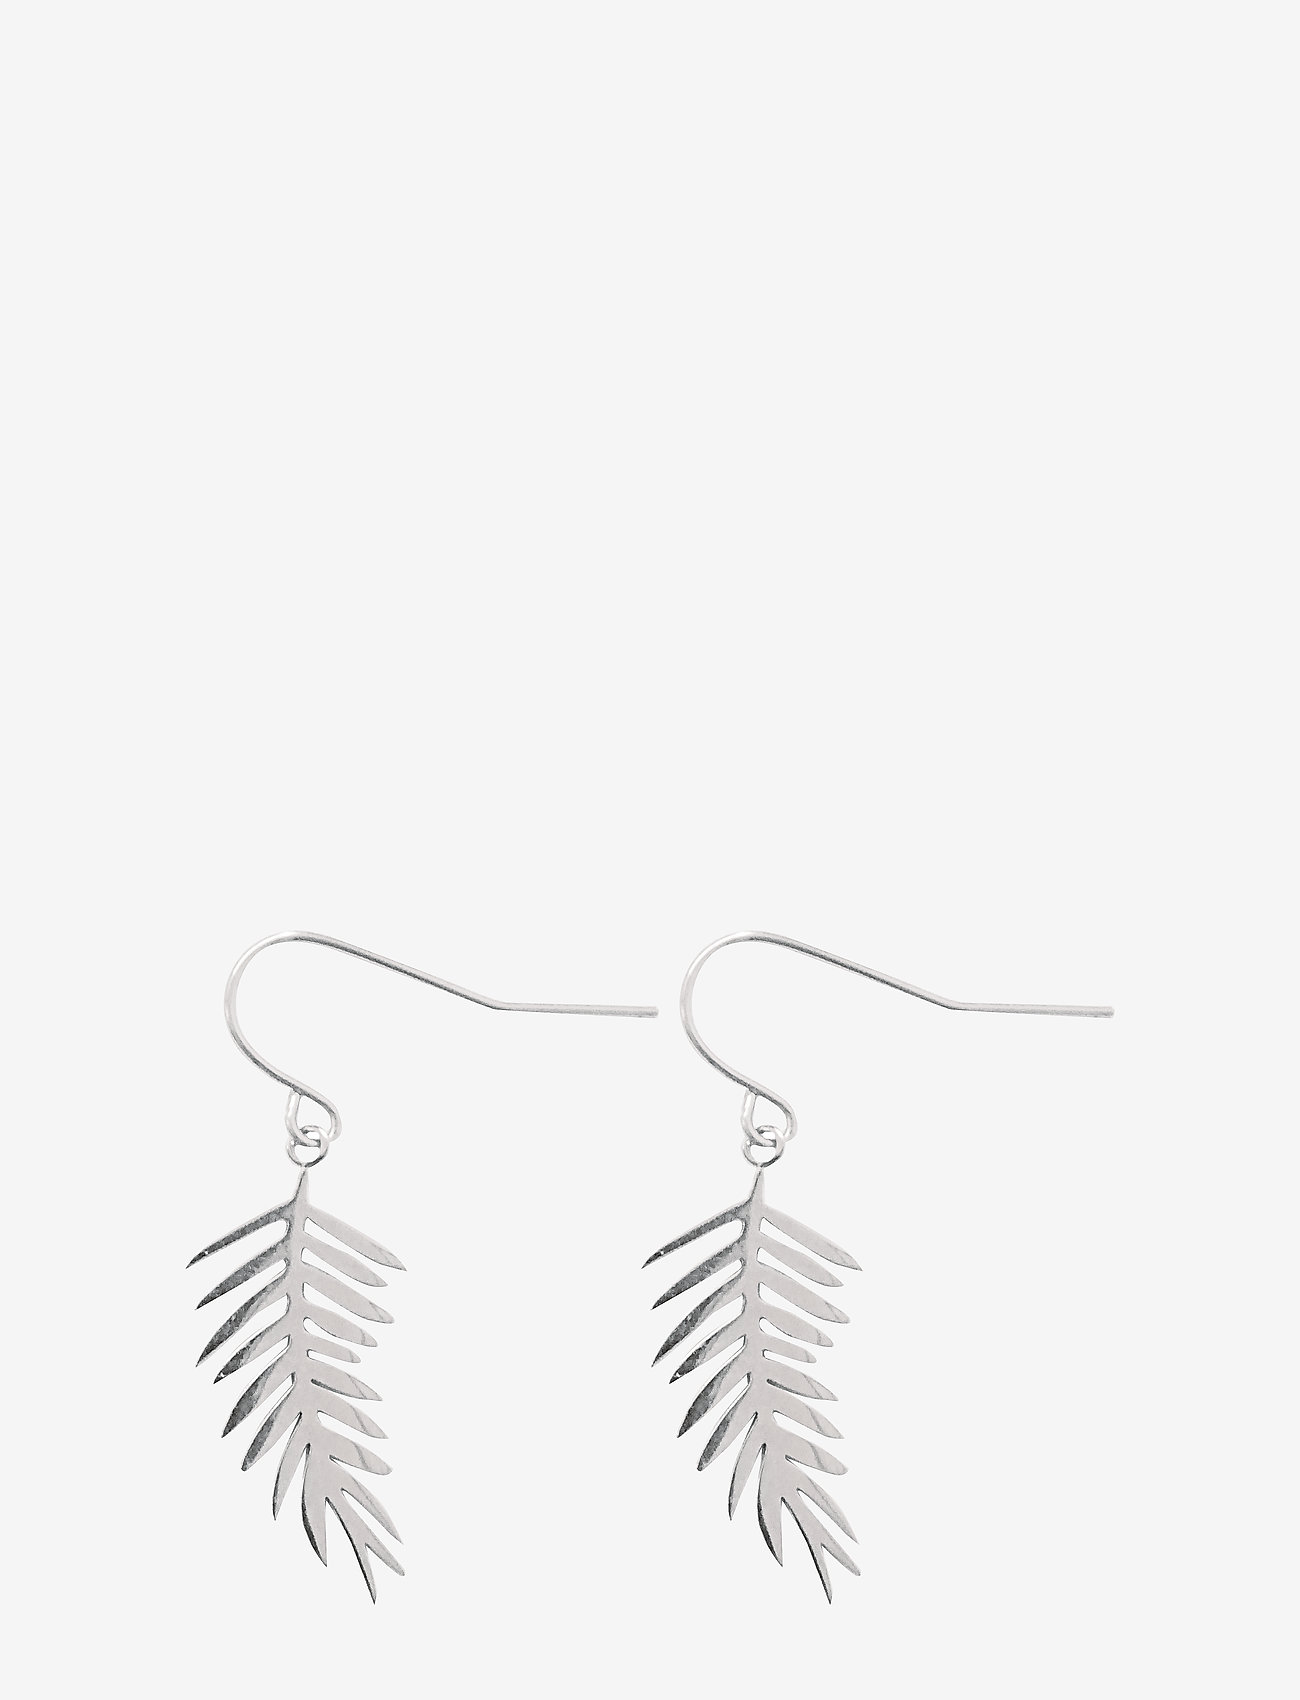 PIPOL'S BAZAAR - Colonia Palm PIPOL Ear Silver - statement - silver